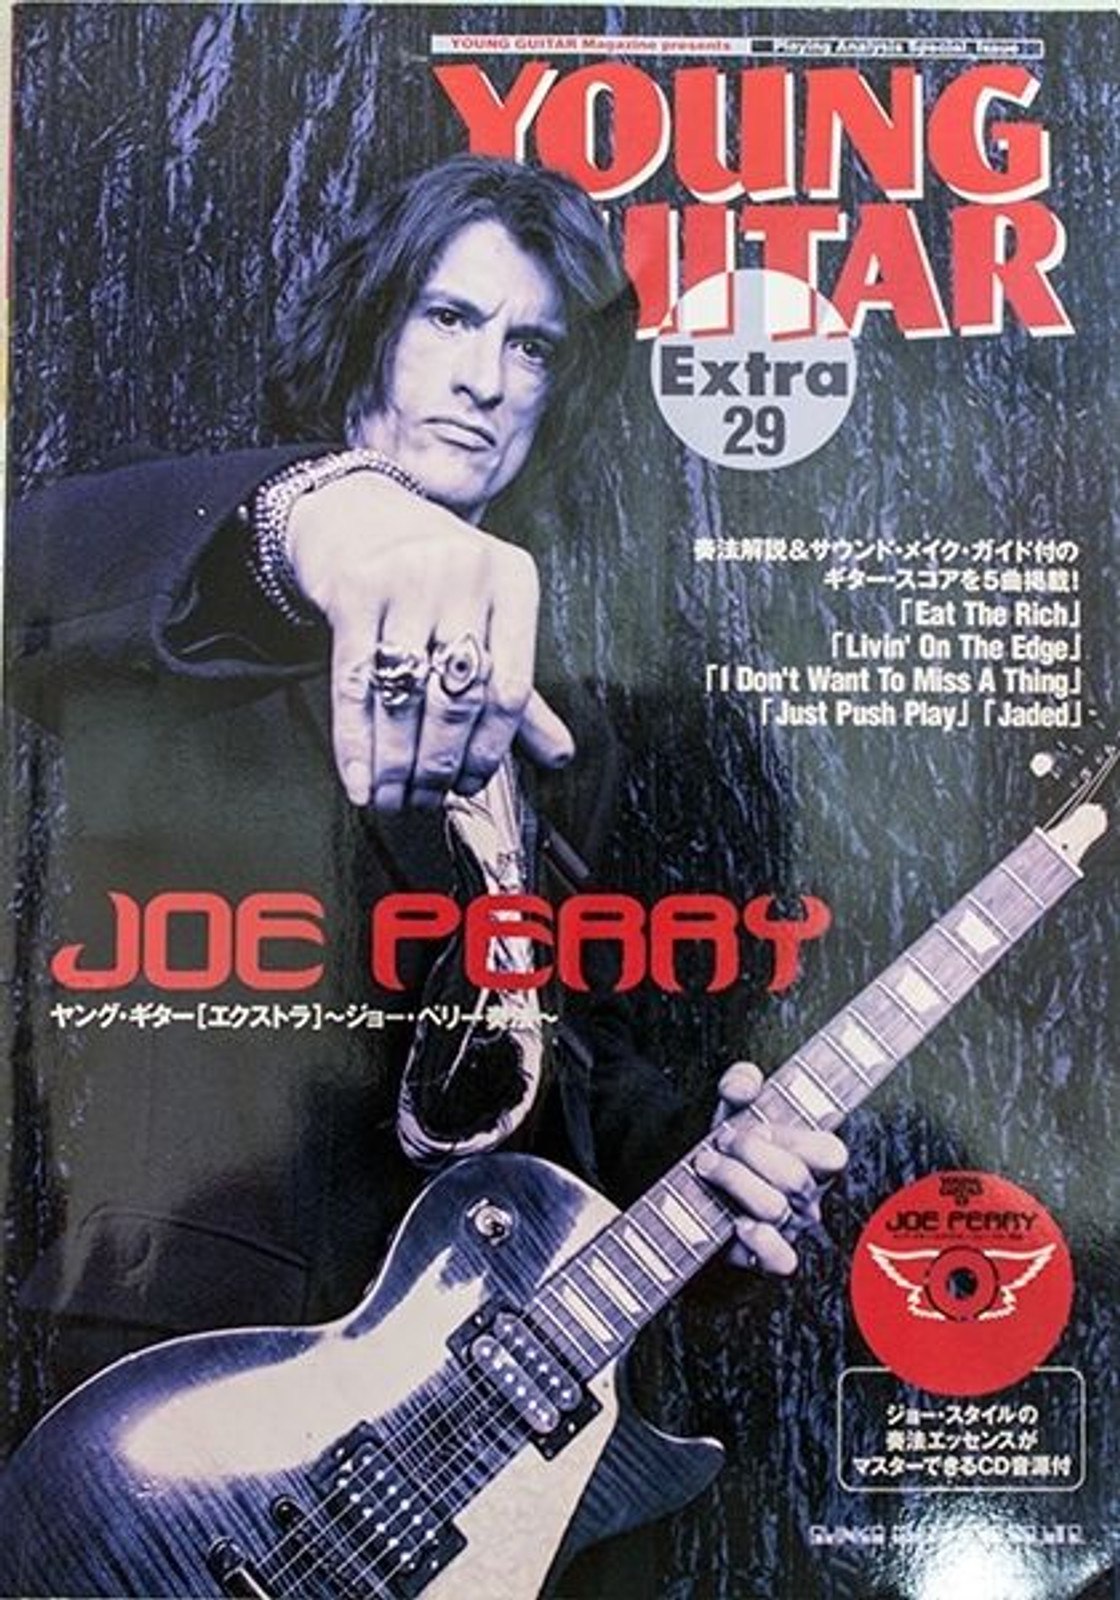 Young Guitar Magazine Extra 29 Joe Perry AEROSMITH Guitar Score & Guide book